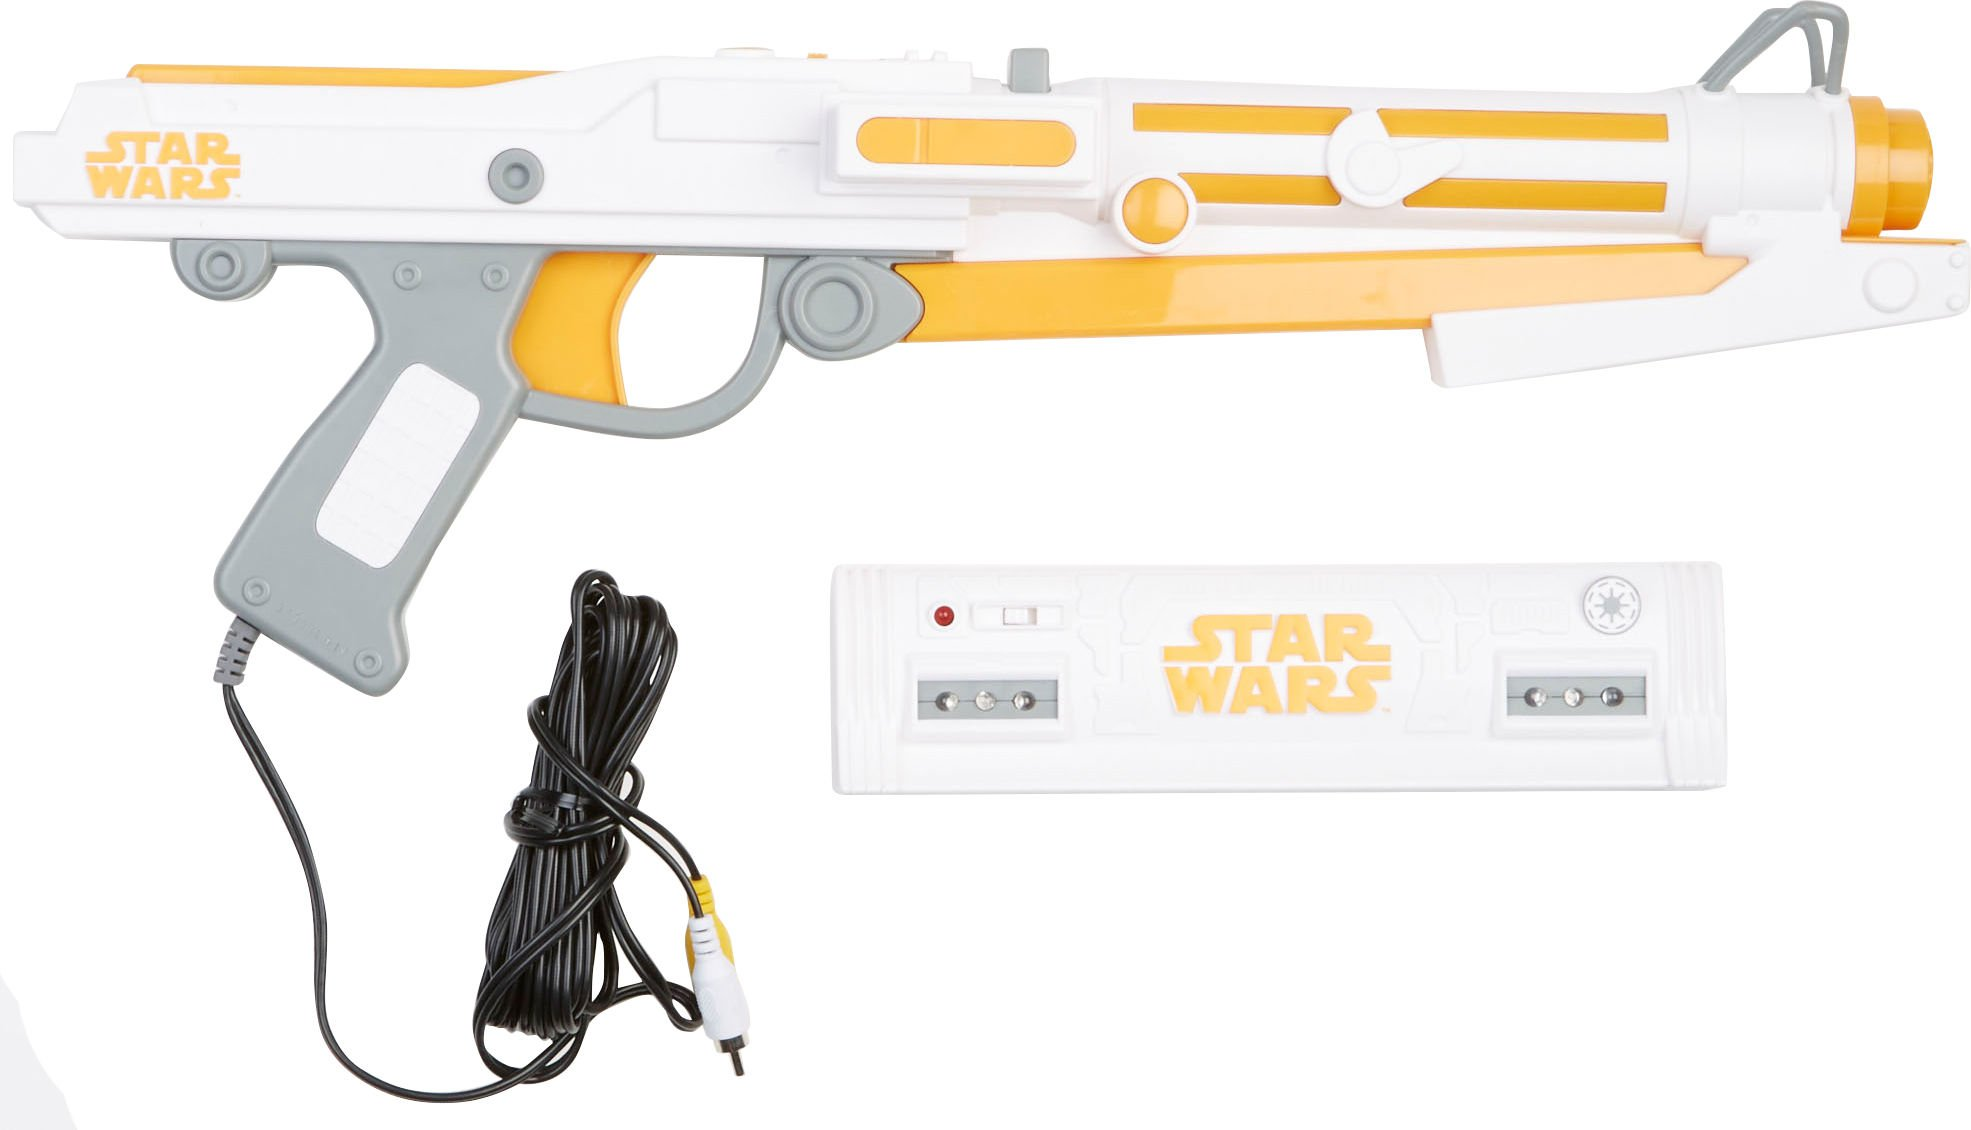 Star Wars Clone Trooper Plug and Play Video Game